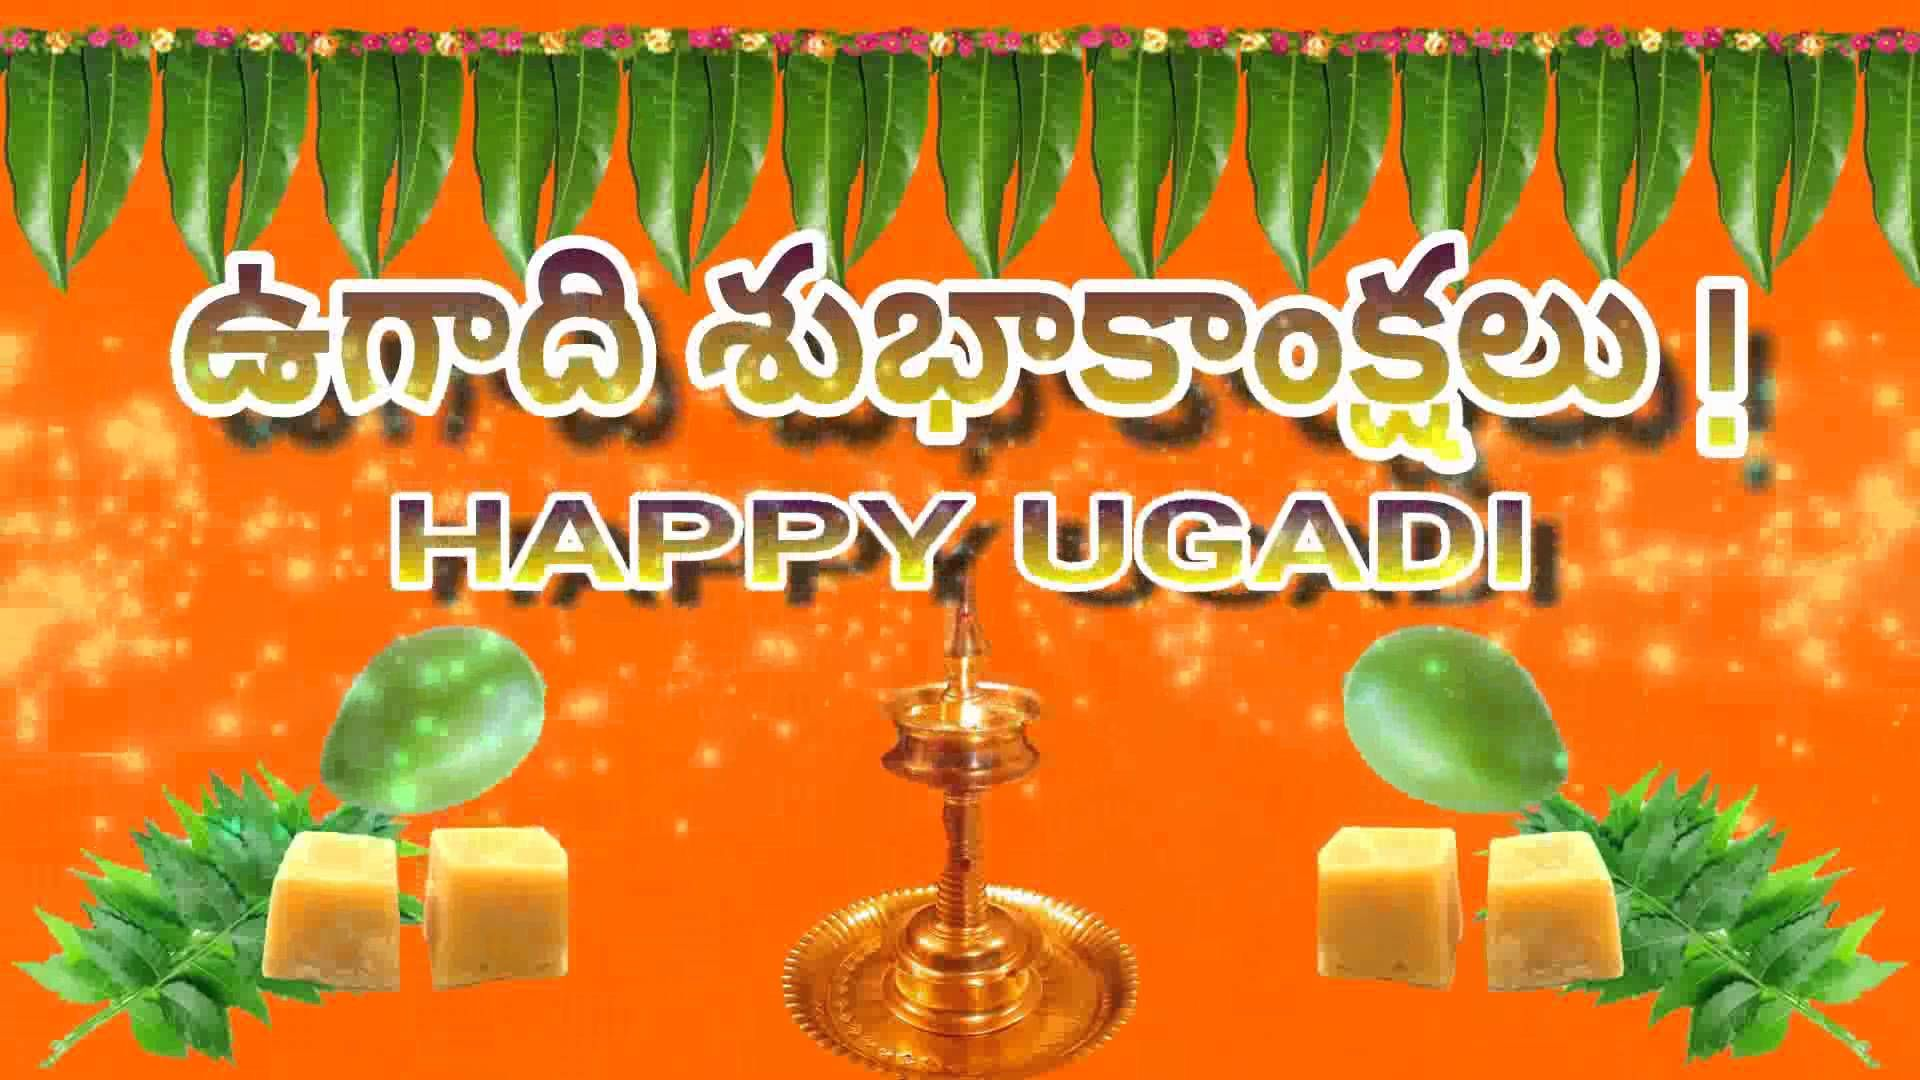 Happy ugadi greetings ugadi 2016 ugadi wishes ugadi whatsapp happy ugadi greetings ugadi 2016 ugadi wishes ugadi whatsapp telugu m4hsunfo